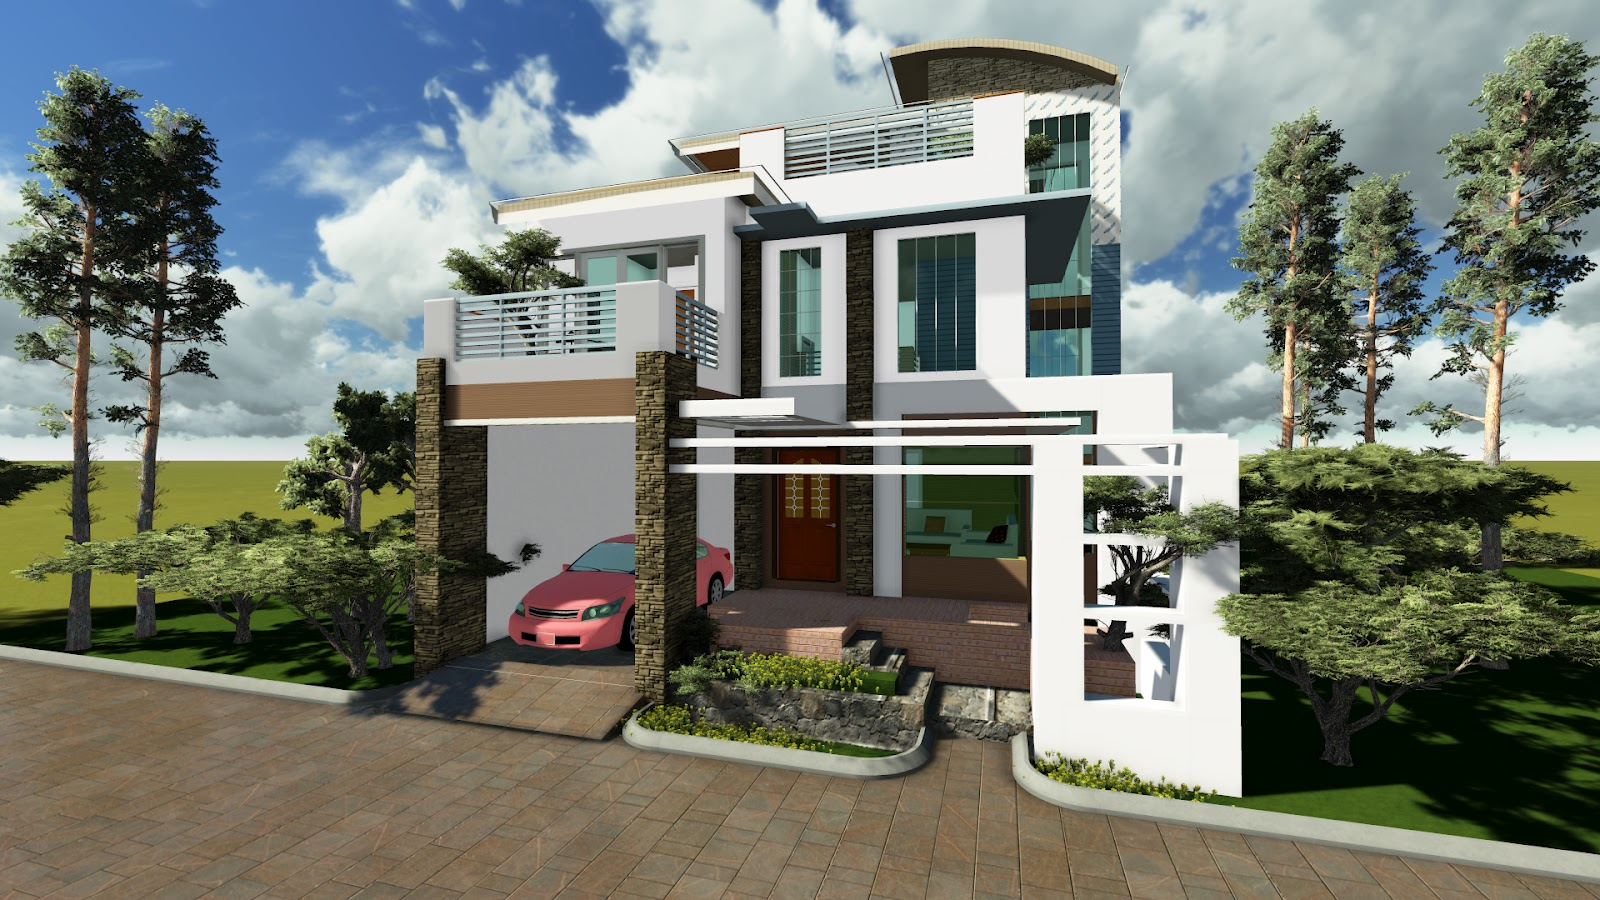 House architecture design in philippines 2017 2018 for Architecture house design philippines